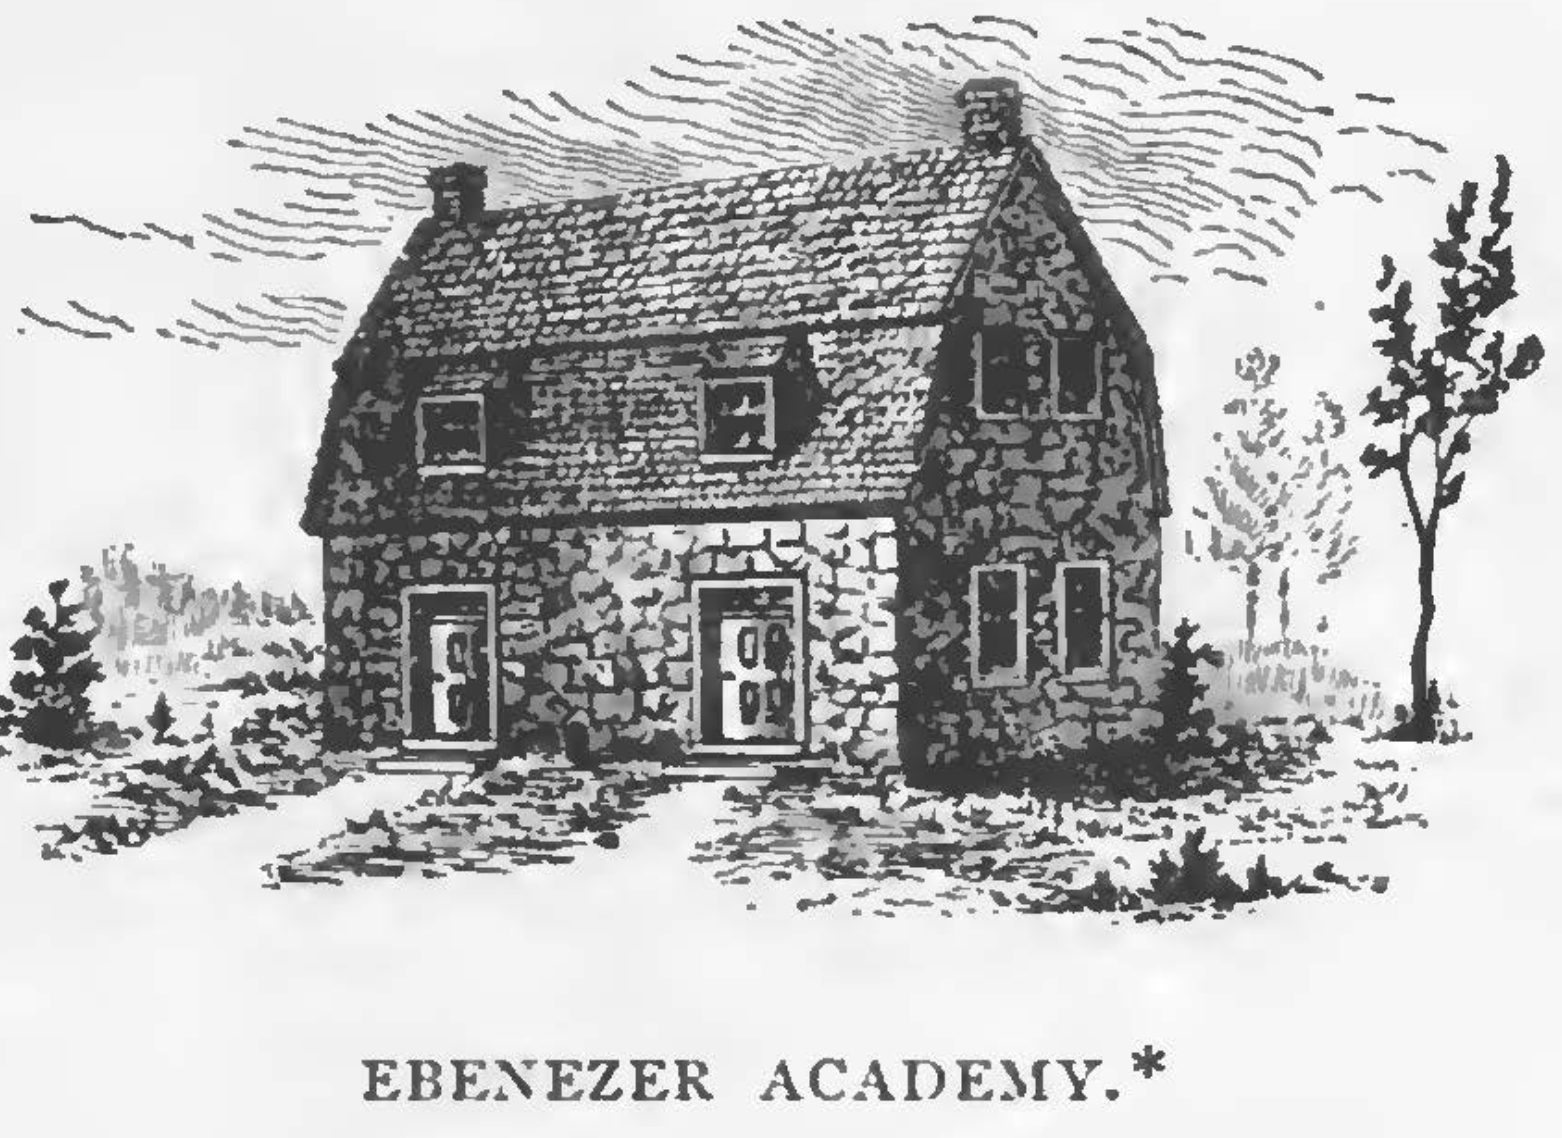 Drawing of Ebenezer Academy before the structure was razed.